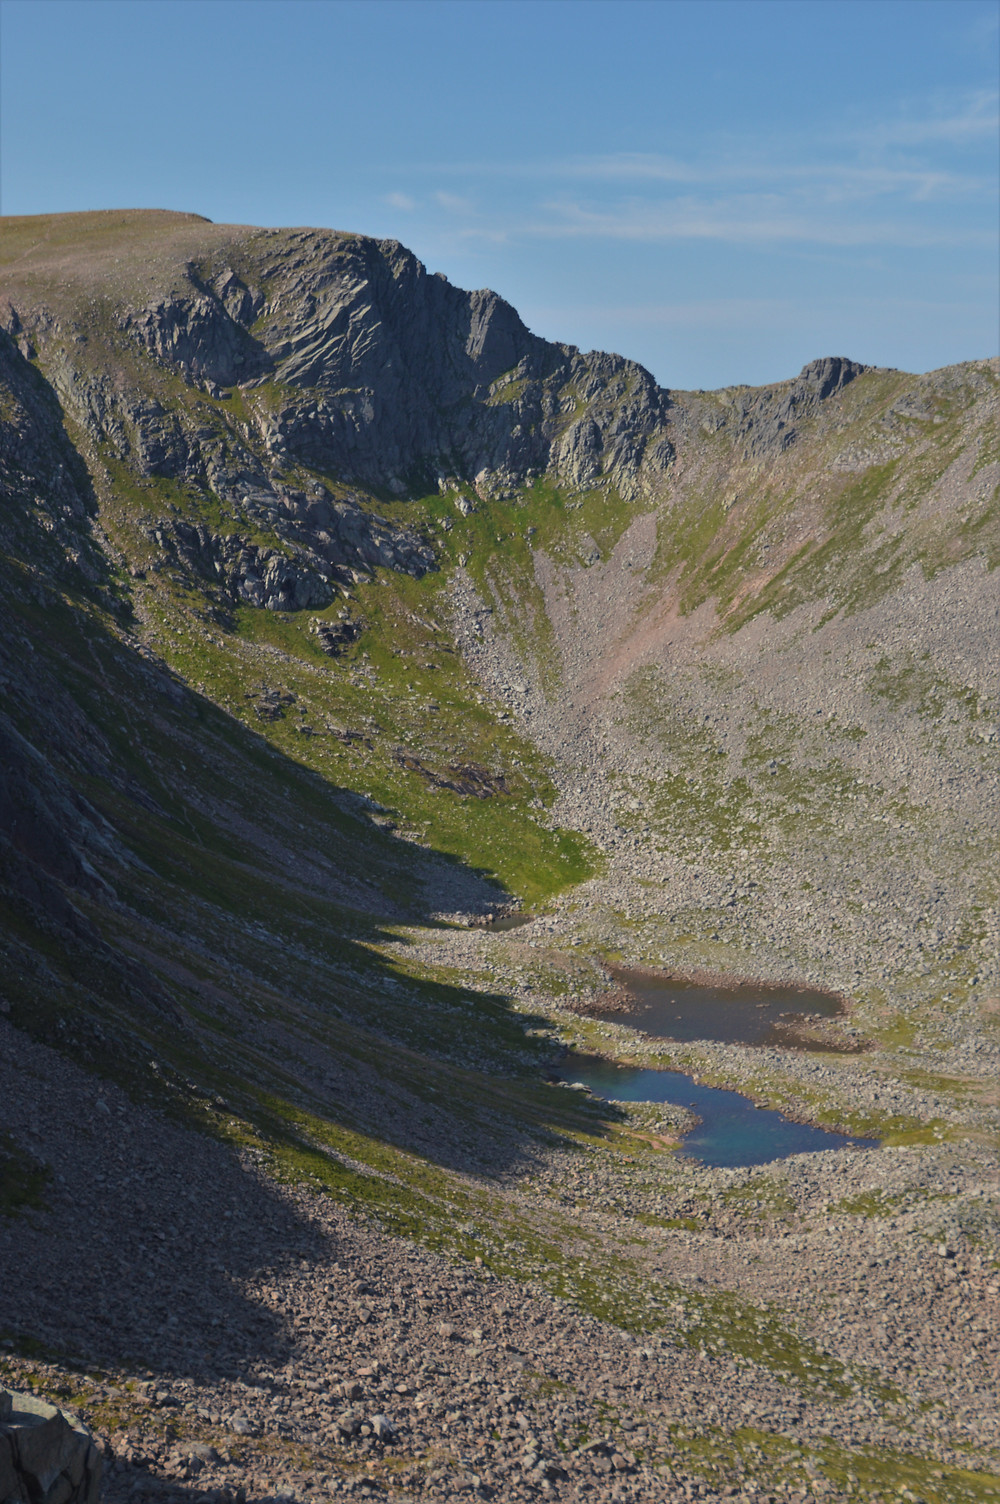 A close-up of the Coire an t-Sneachdsa headwall and lochans on the Cairn Gorm hike via the Northern Corries